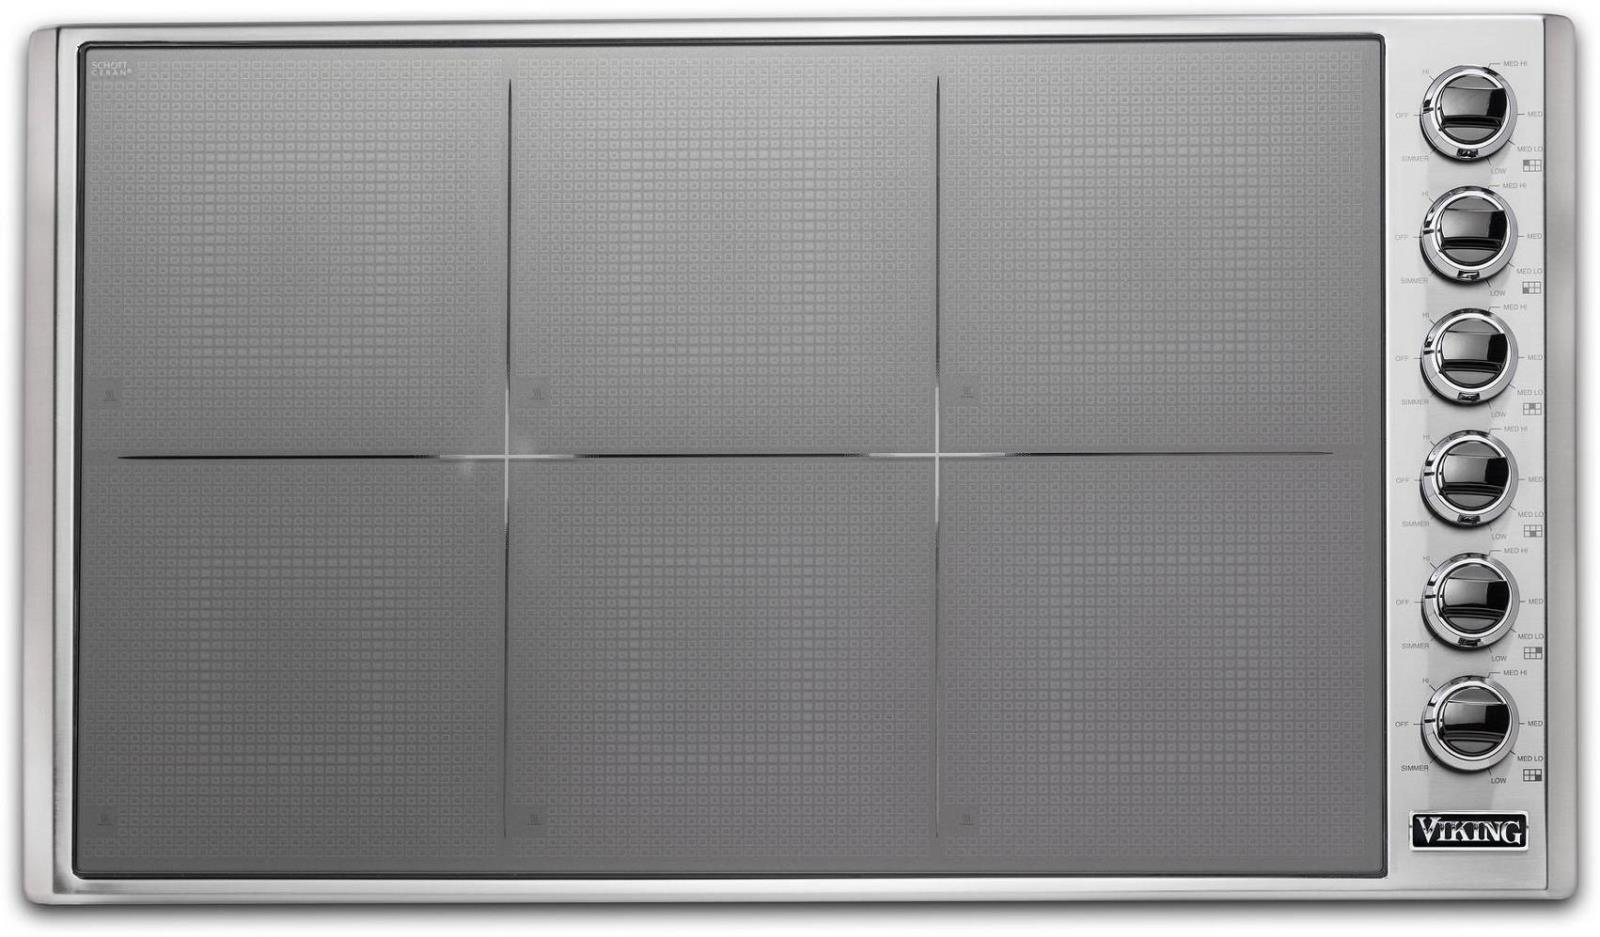 "Viking 36"" Magnequick LED Induction Ceramic Surface Cooktop VICU53616BST Images - ALSurplus AL"